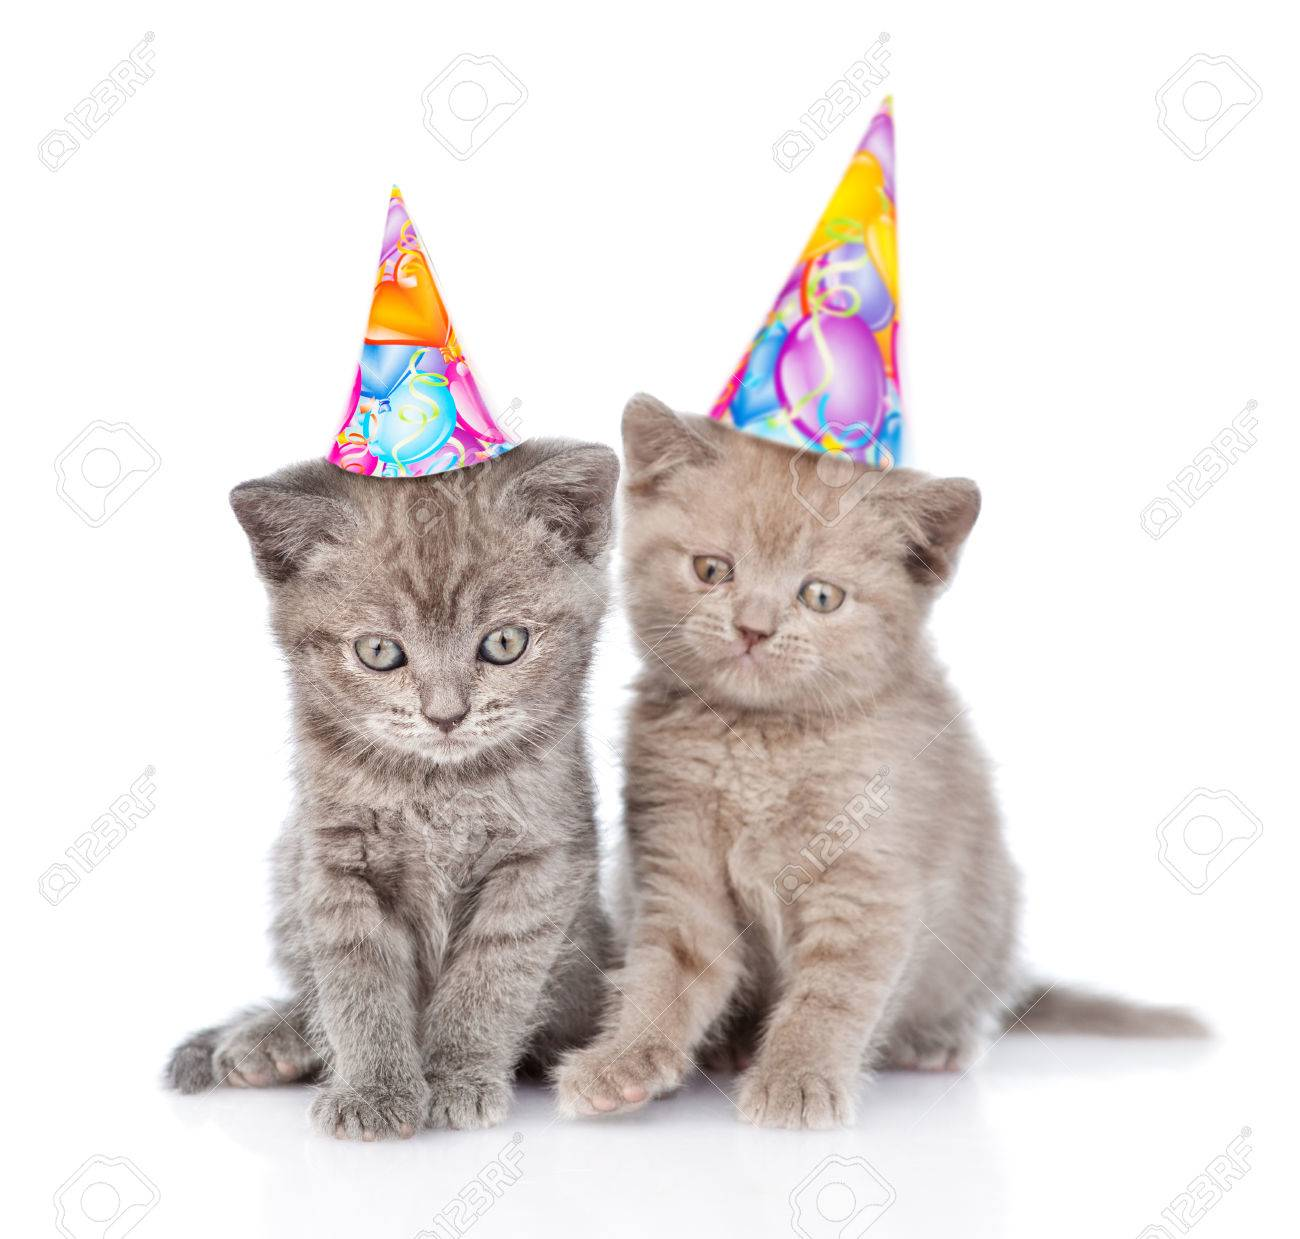 Two Funny Kittens With Birthday Hats Isolated On White Background